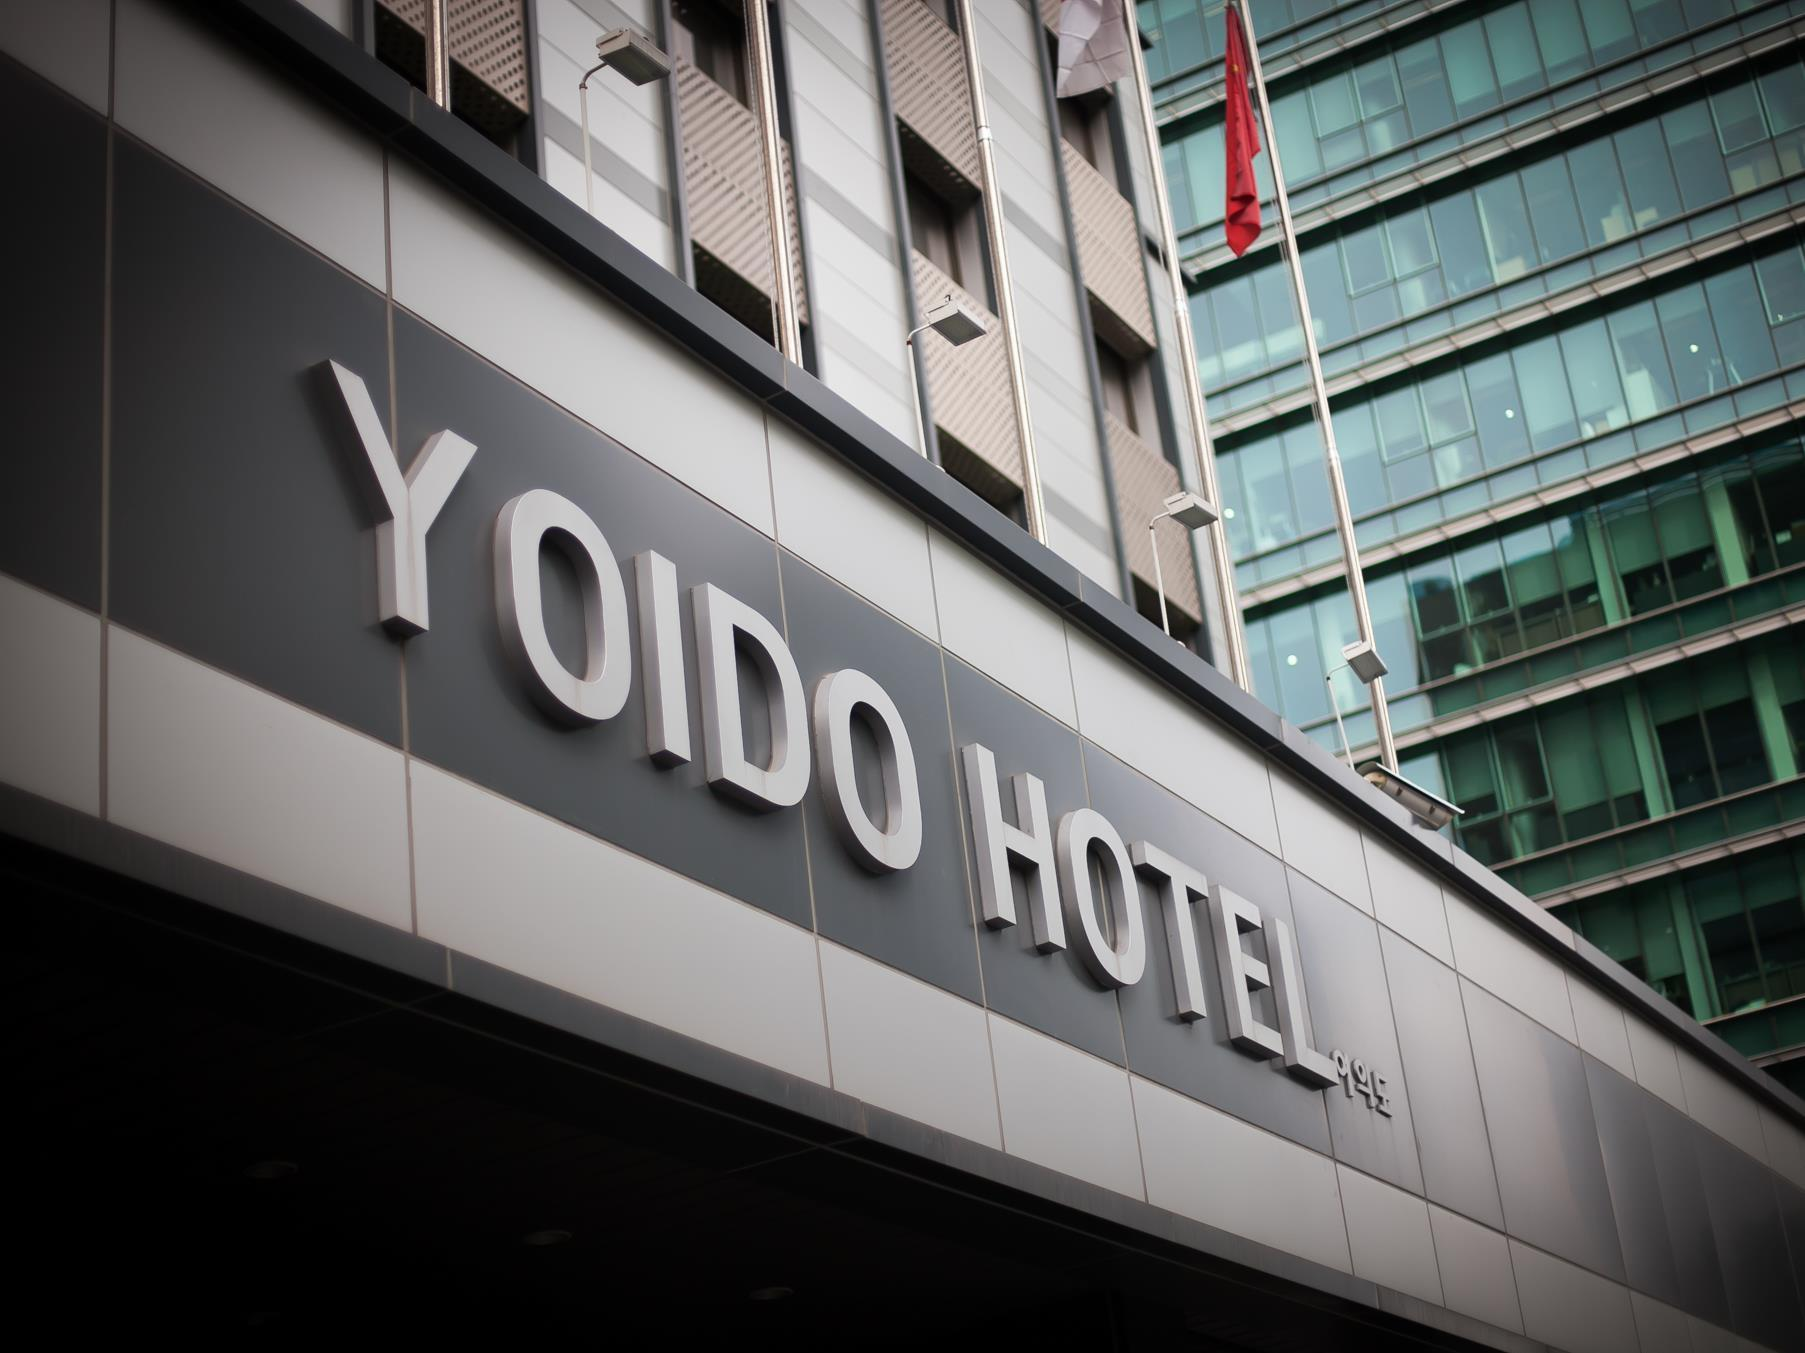 Hotel Yoido - Hotels and Accommodation in South Korea, Asia